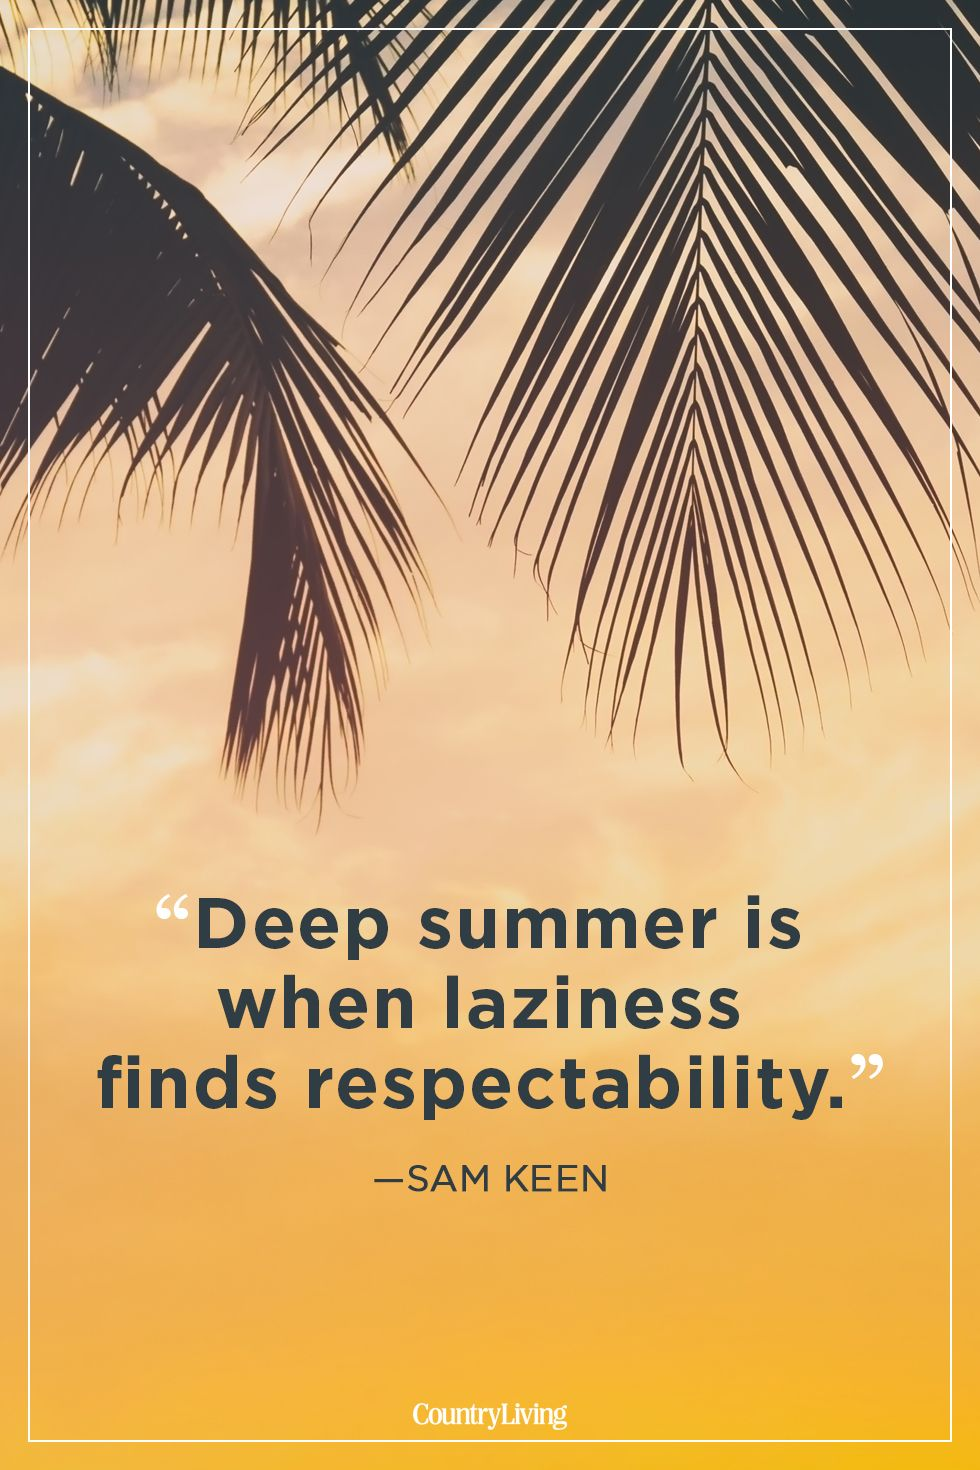 24 Best Summer Quotes And Sayings Inspirational Quotes About Summer